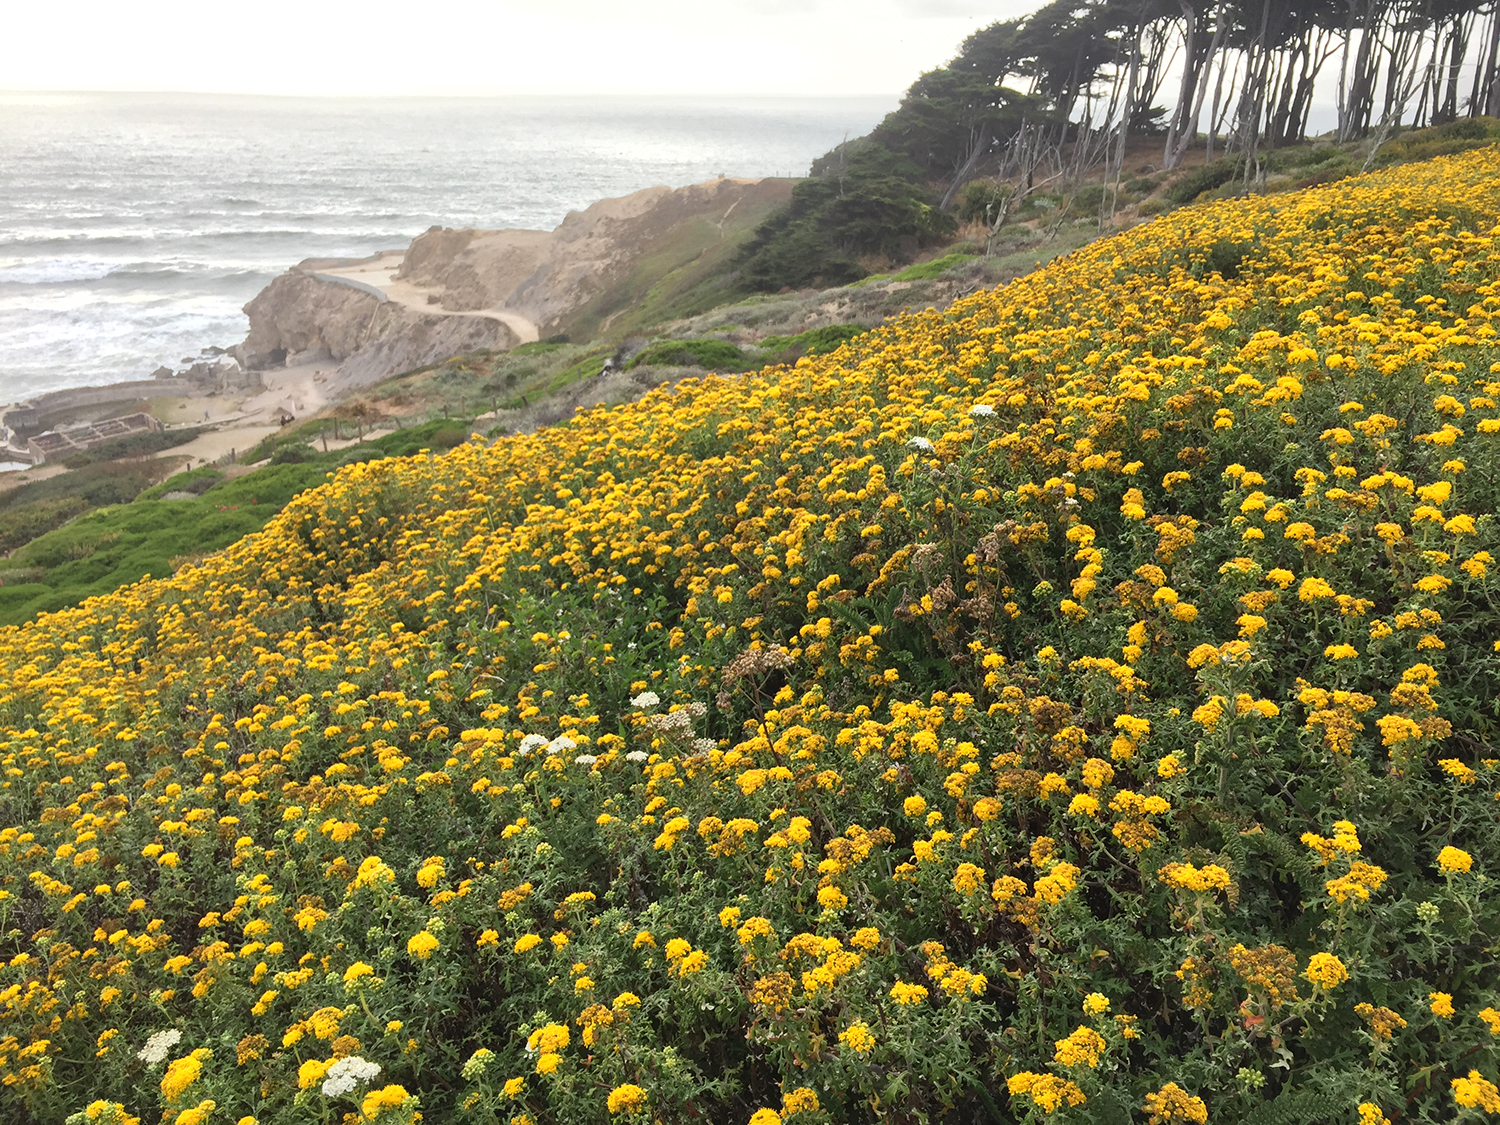 Above the Sutro Baths  7:01 pm